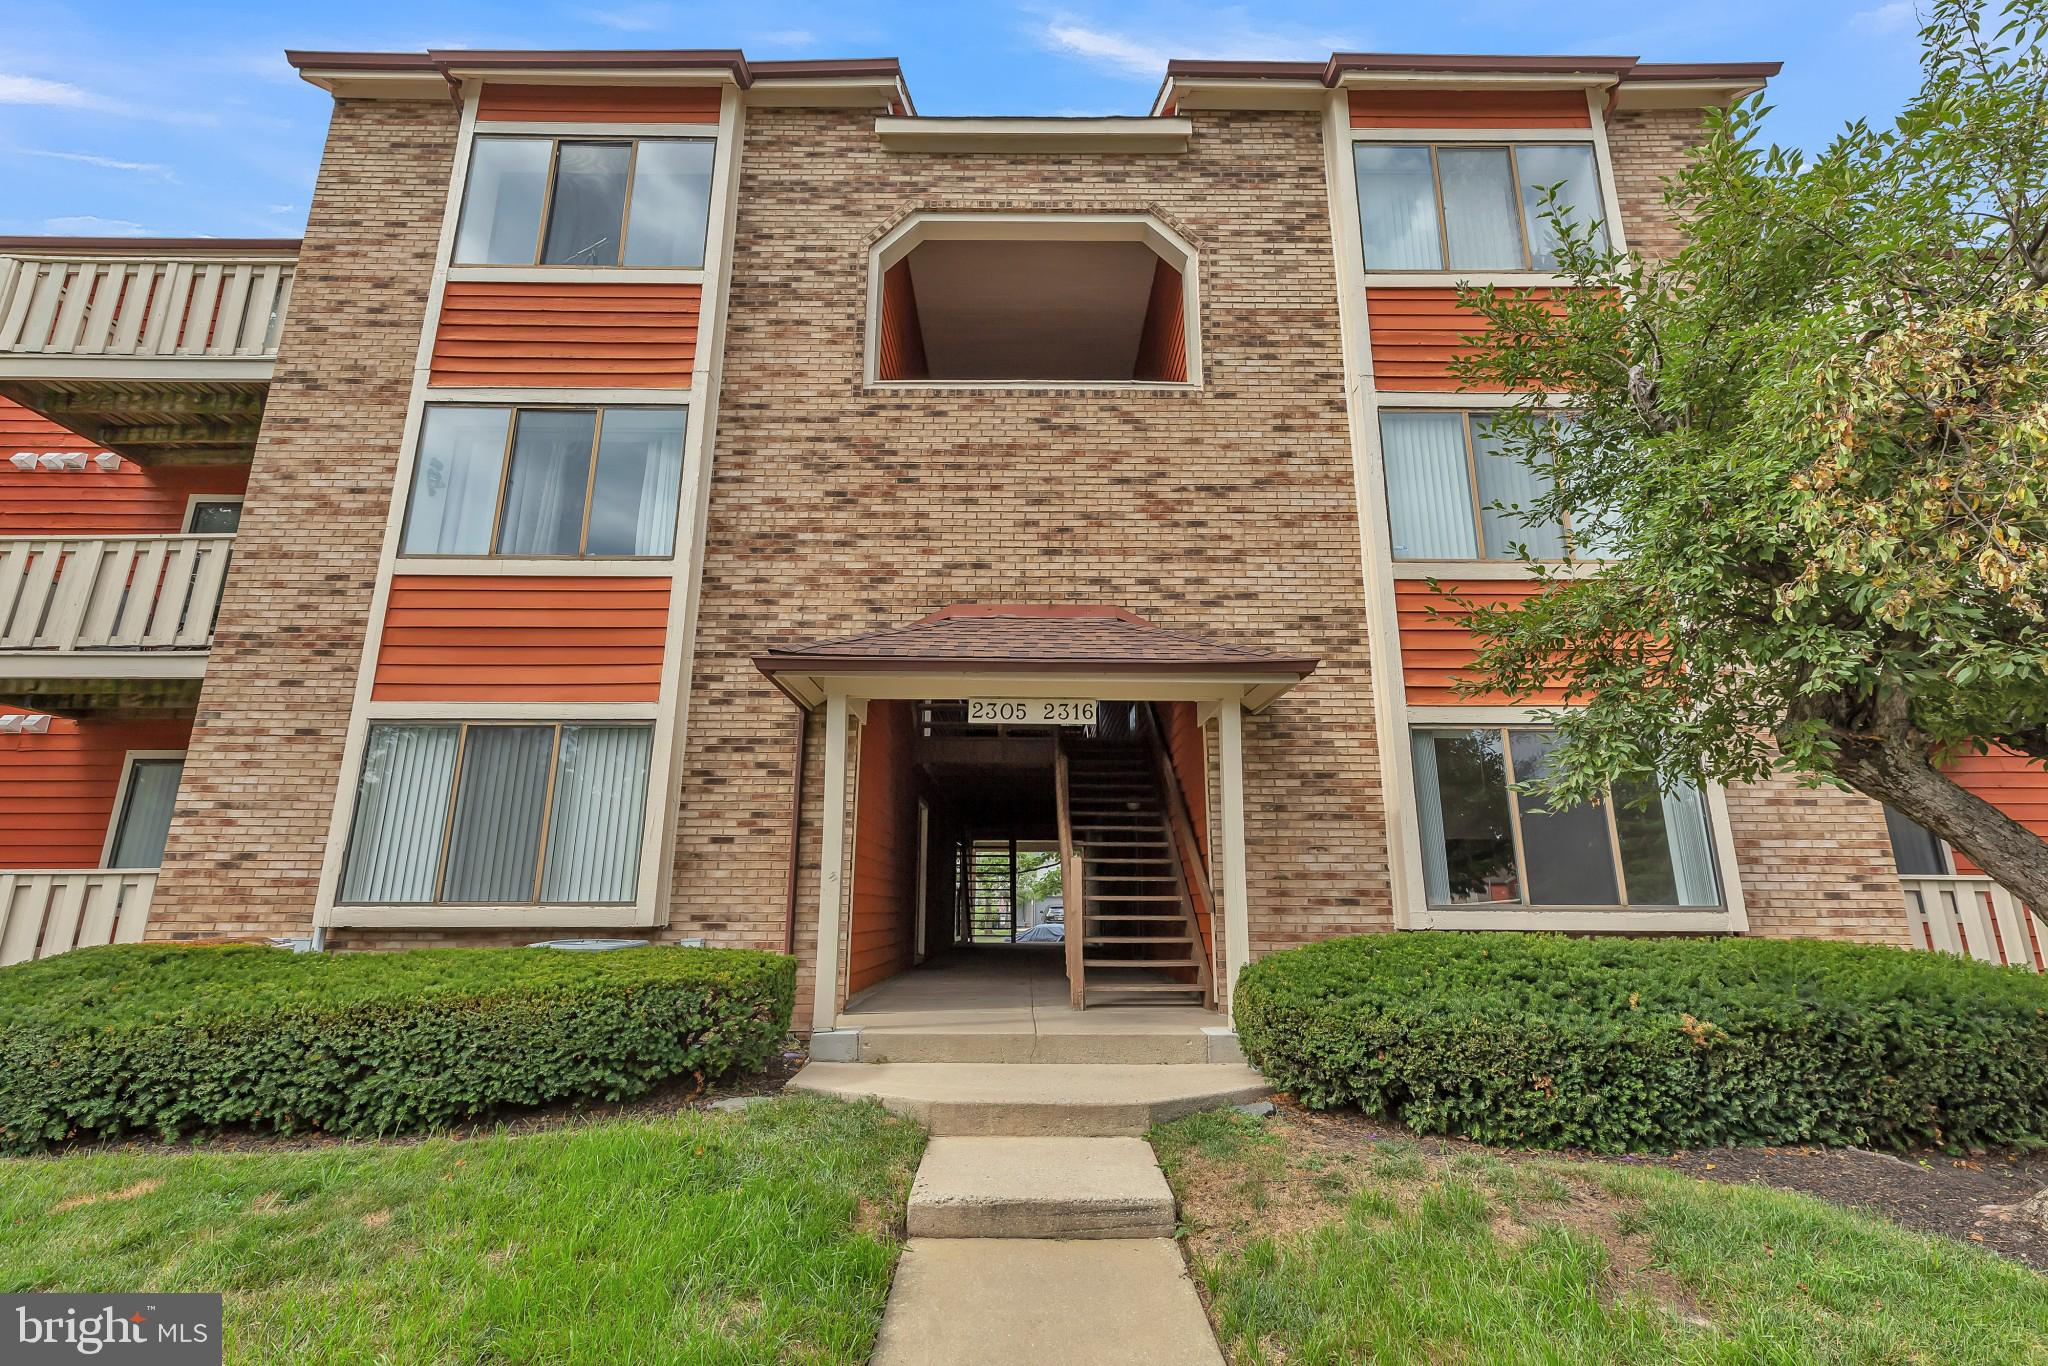 NO STEPS! 1st-floor, 2 bedroom condo in the desirable Brittany Meadows community in Mount Laurel. This beautifully maintained unit features a good size living area updated kitchen, dining room, gas heat and central air. The full bathroom features a stand up shower and a huge tub. Good size bedrooms nice big closet in the master. Utility room has a full size washer and dryer. Patio is off of the living giving you great space for outdoor relaxing. Convenient location close to major highways making any commute fairly easy. STOP PAYING MORE MONEY IN RENT AND MAKE THIS YOUR HOME TODAY!